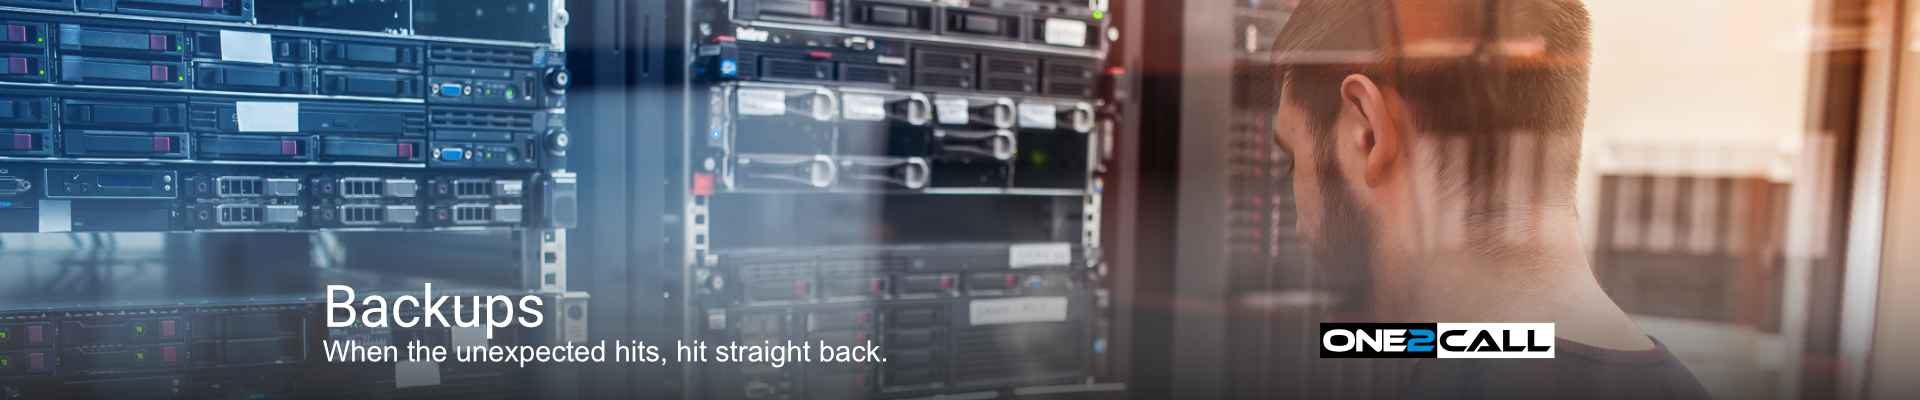 Backups - When the unexpected hits, hit straight back.